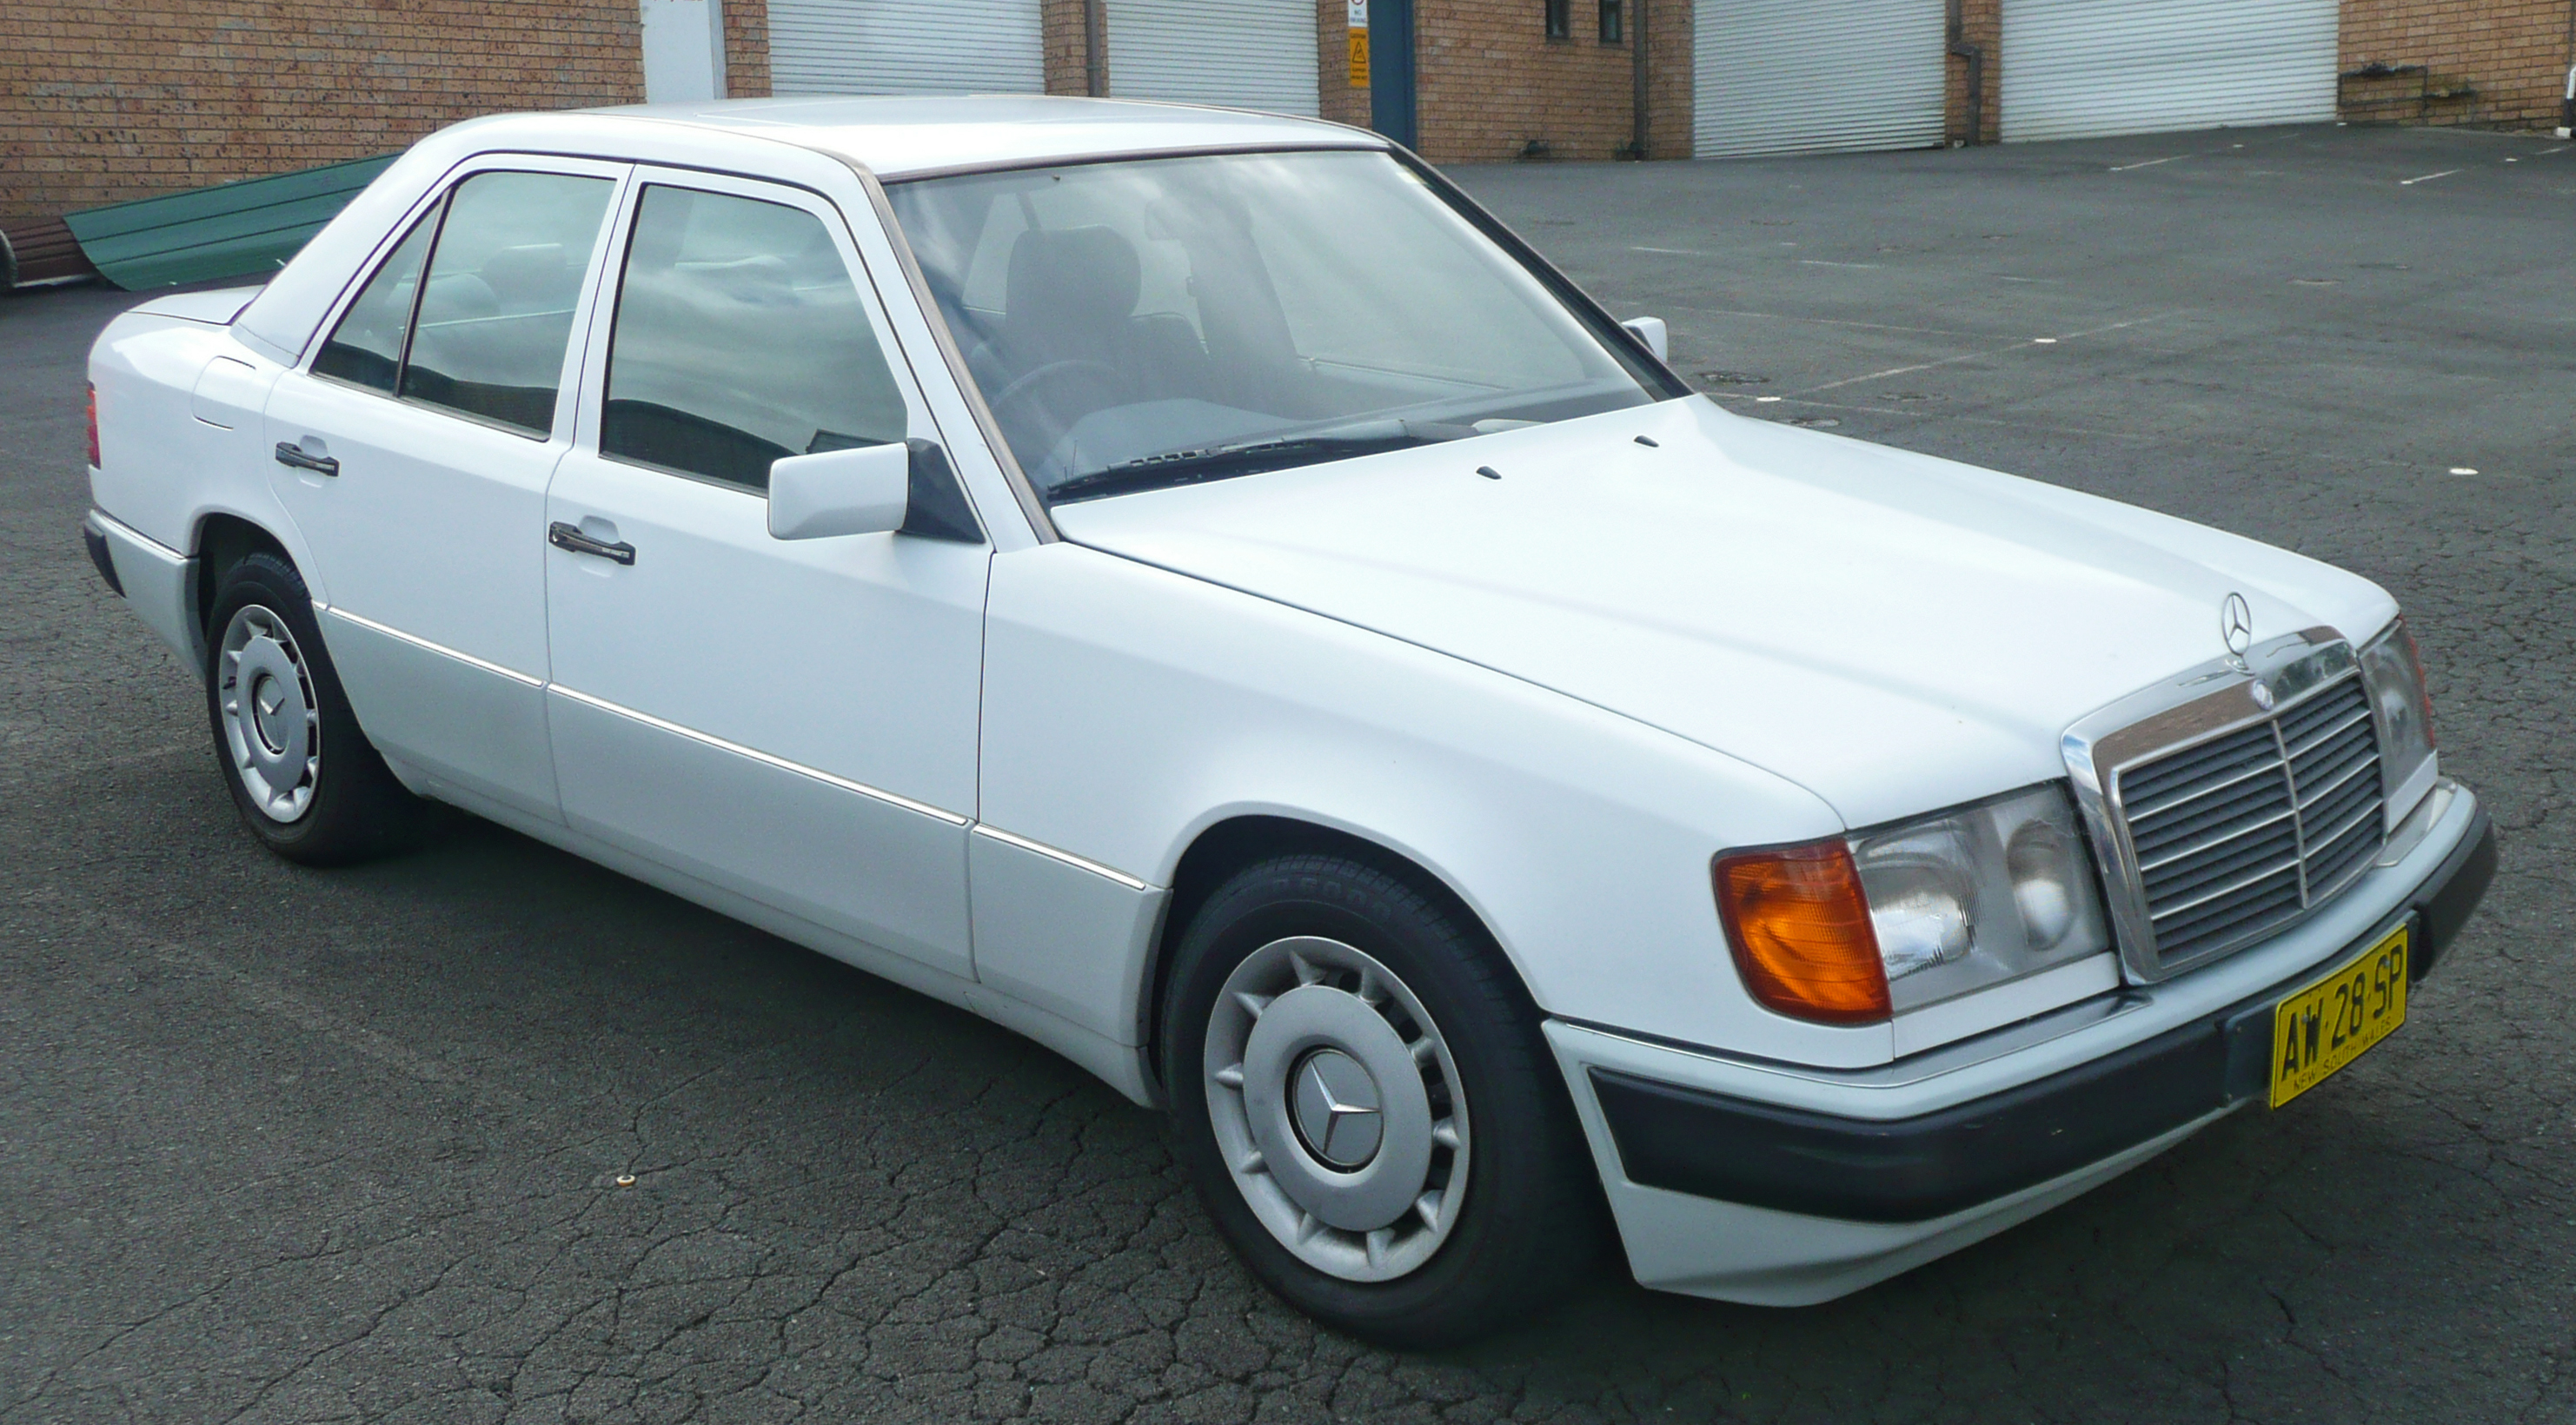 Mercedes benz e 230 technical details history photos on for Mercedes benz brooklyn parts